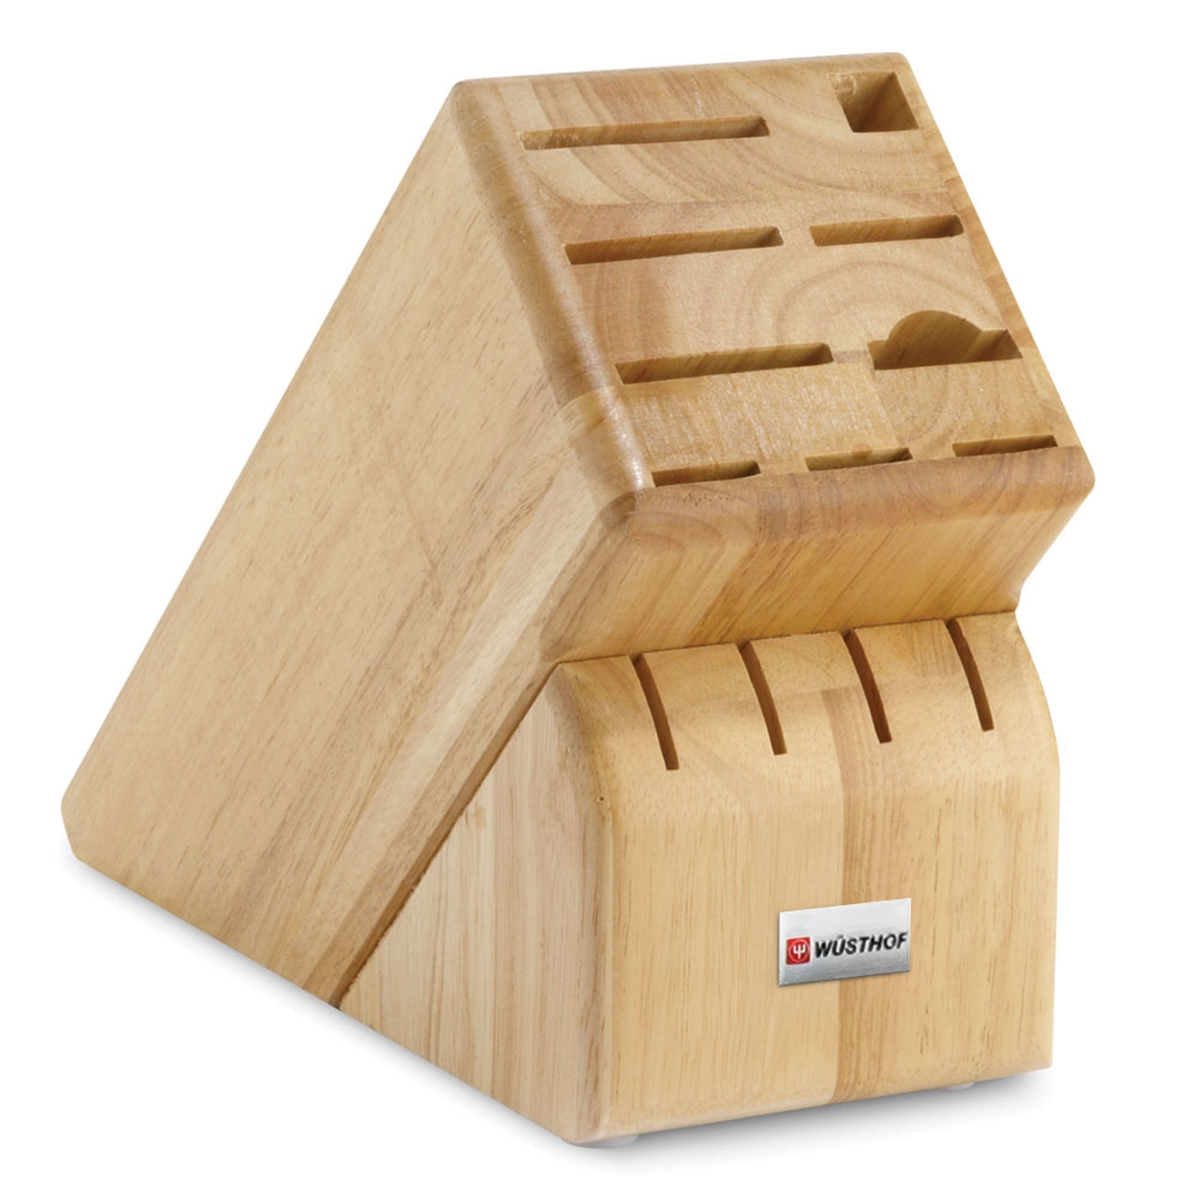 Wusthof 13 Slot Natural Hardwood Knife Block